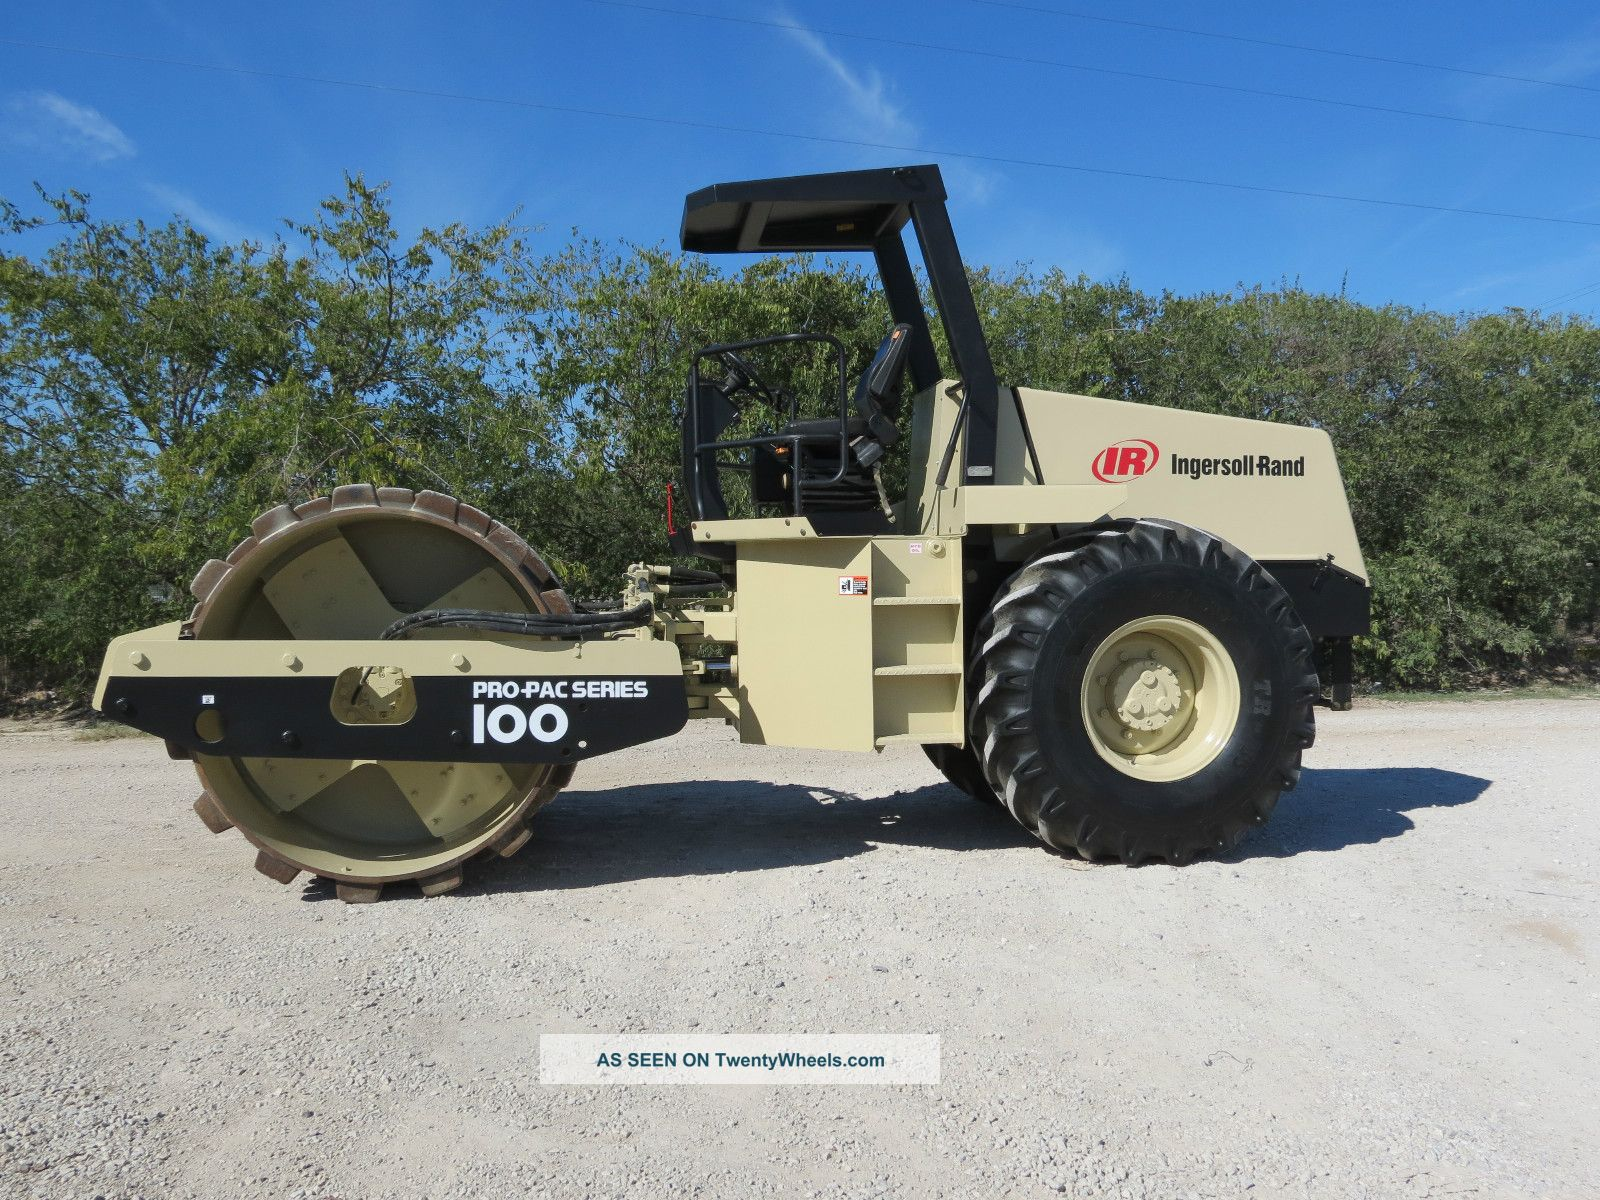 Ingersoll Rand Roller Dd 16 Manual - nokhbeh.org. Doosan Portable Power  2011 BX-8WH Single-Direction Plate